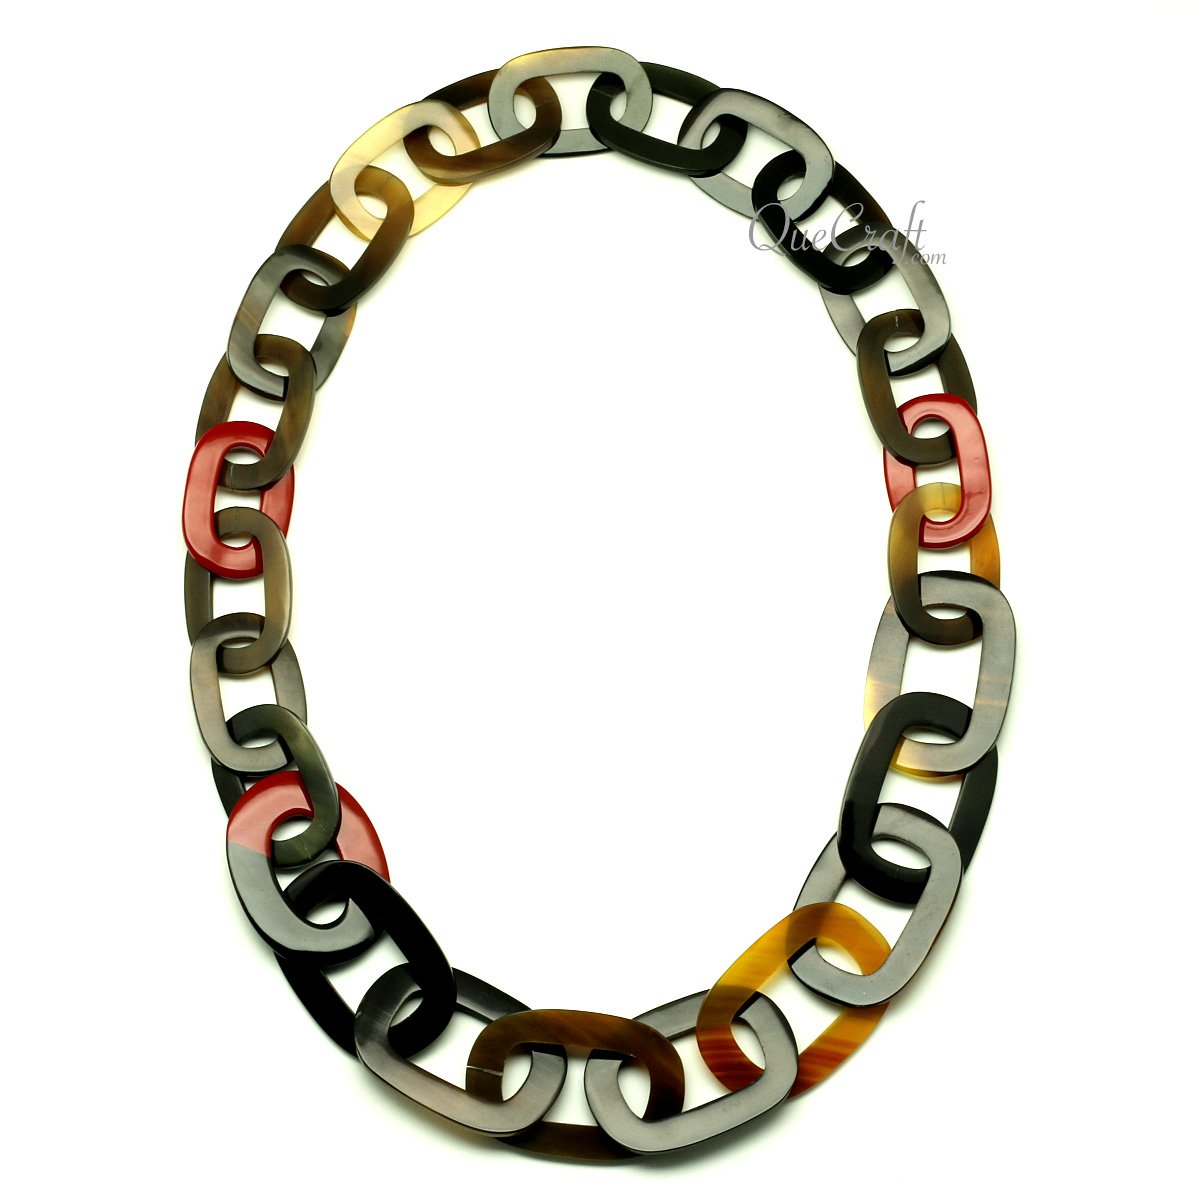 Horn & Lacquer Chain Necklace #13066 - HORN.JEWELRY by QueCraft